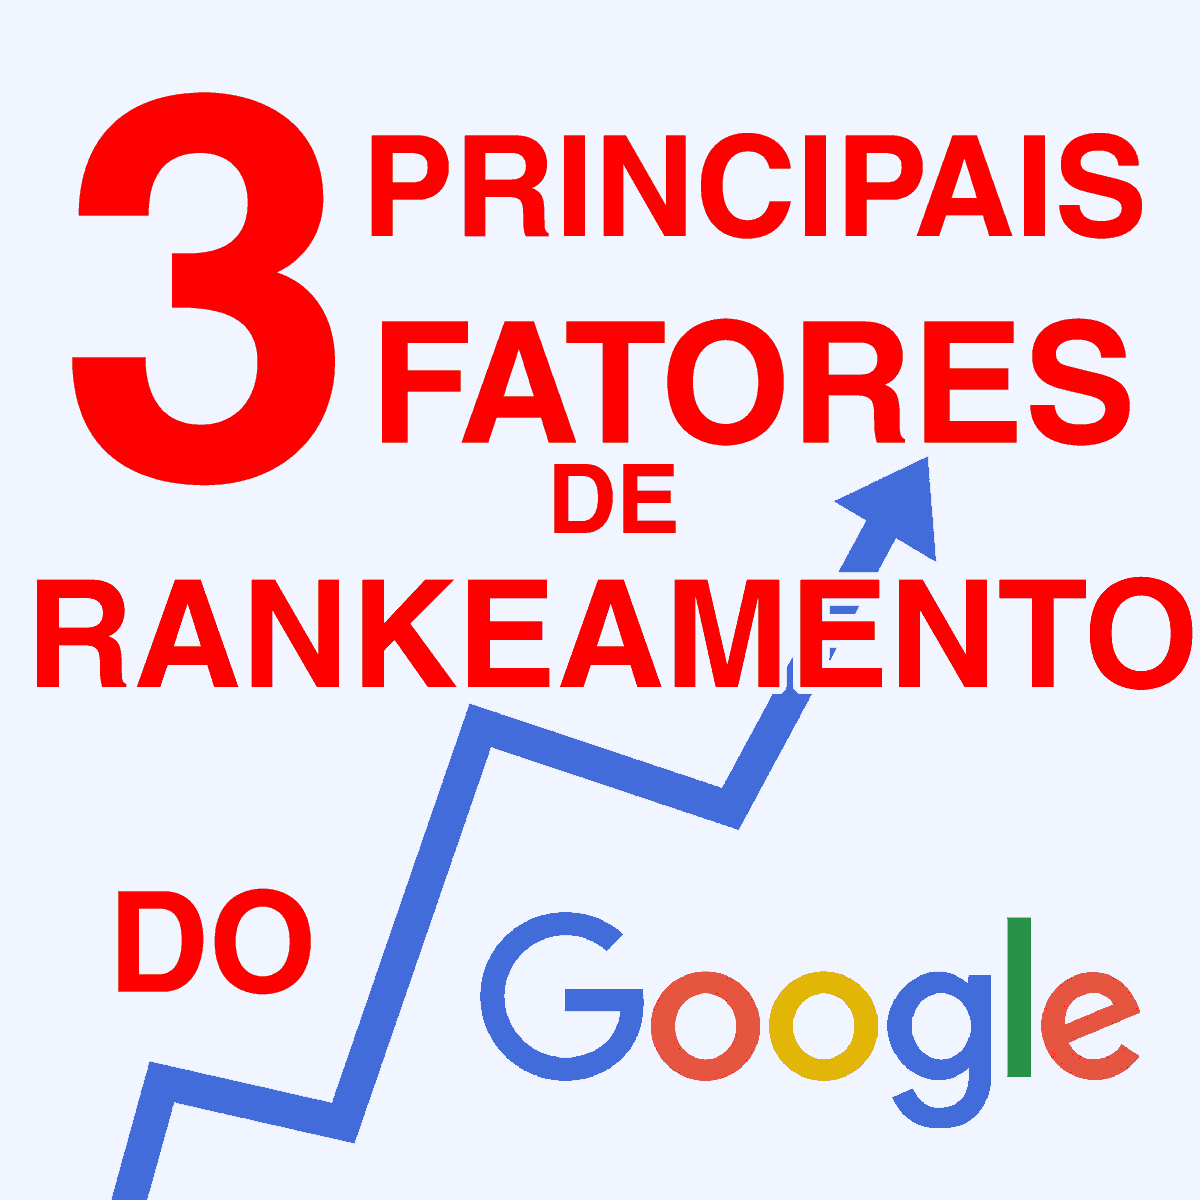 Os 3 principais fatores para rankeamento de sites no Google